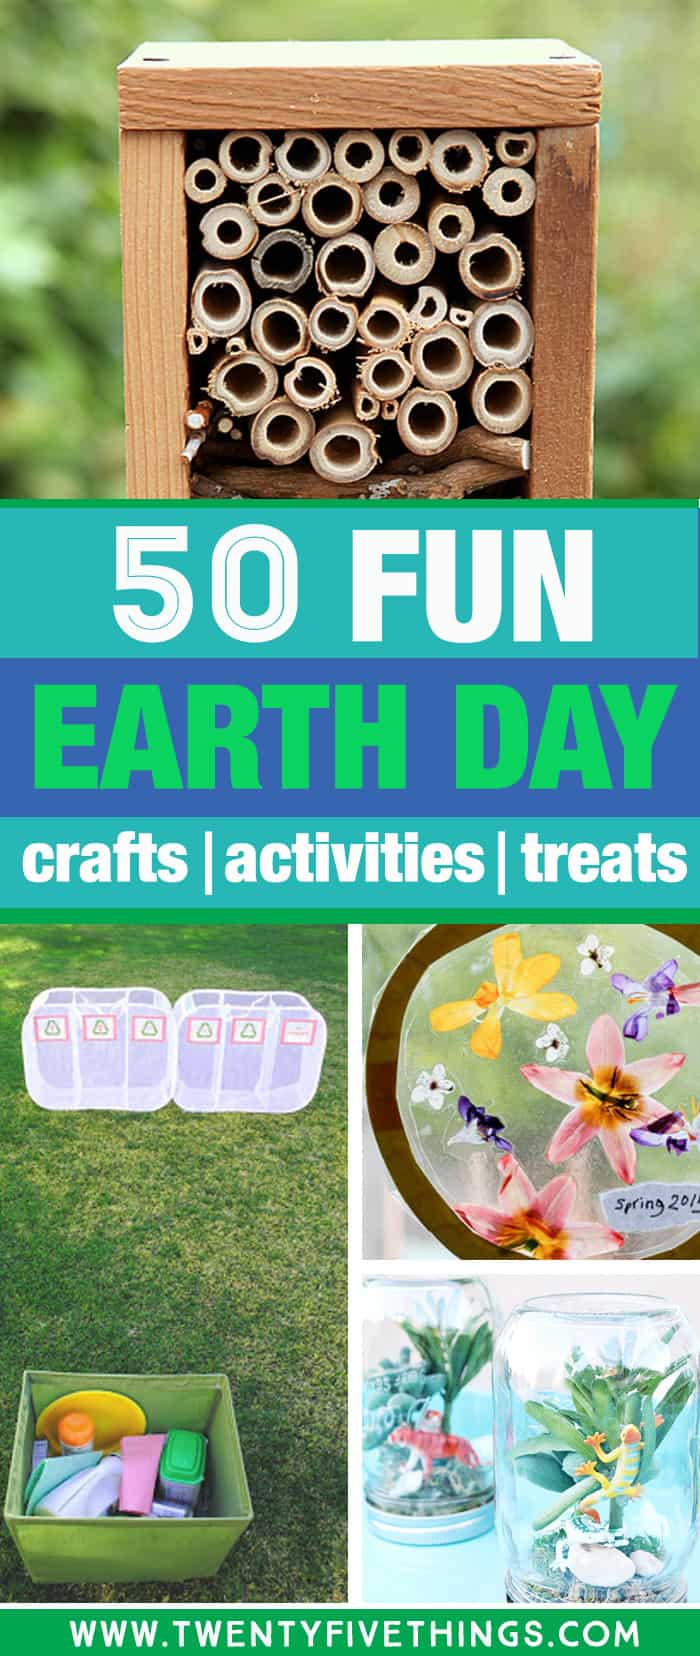 I needed some fun and simple ideas of things to do for Earth Day with the kids, and this was just what I was looking for. Lots of ideas for Earth day games and activities.